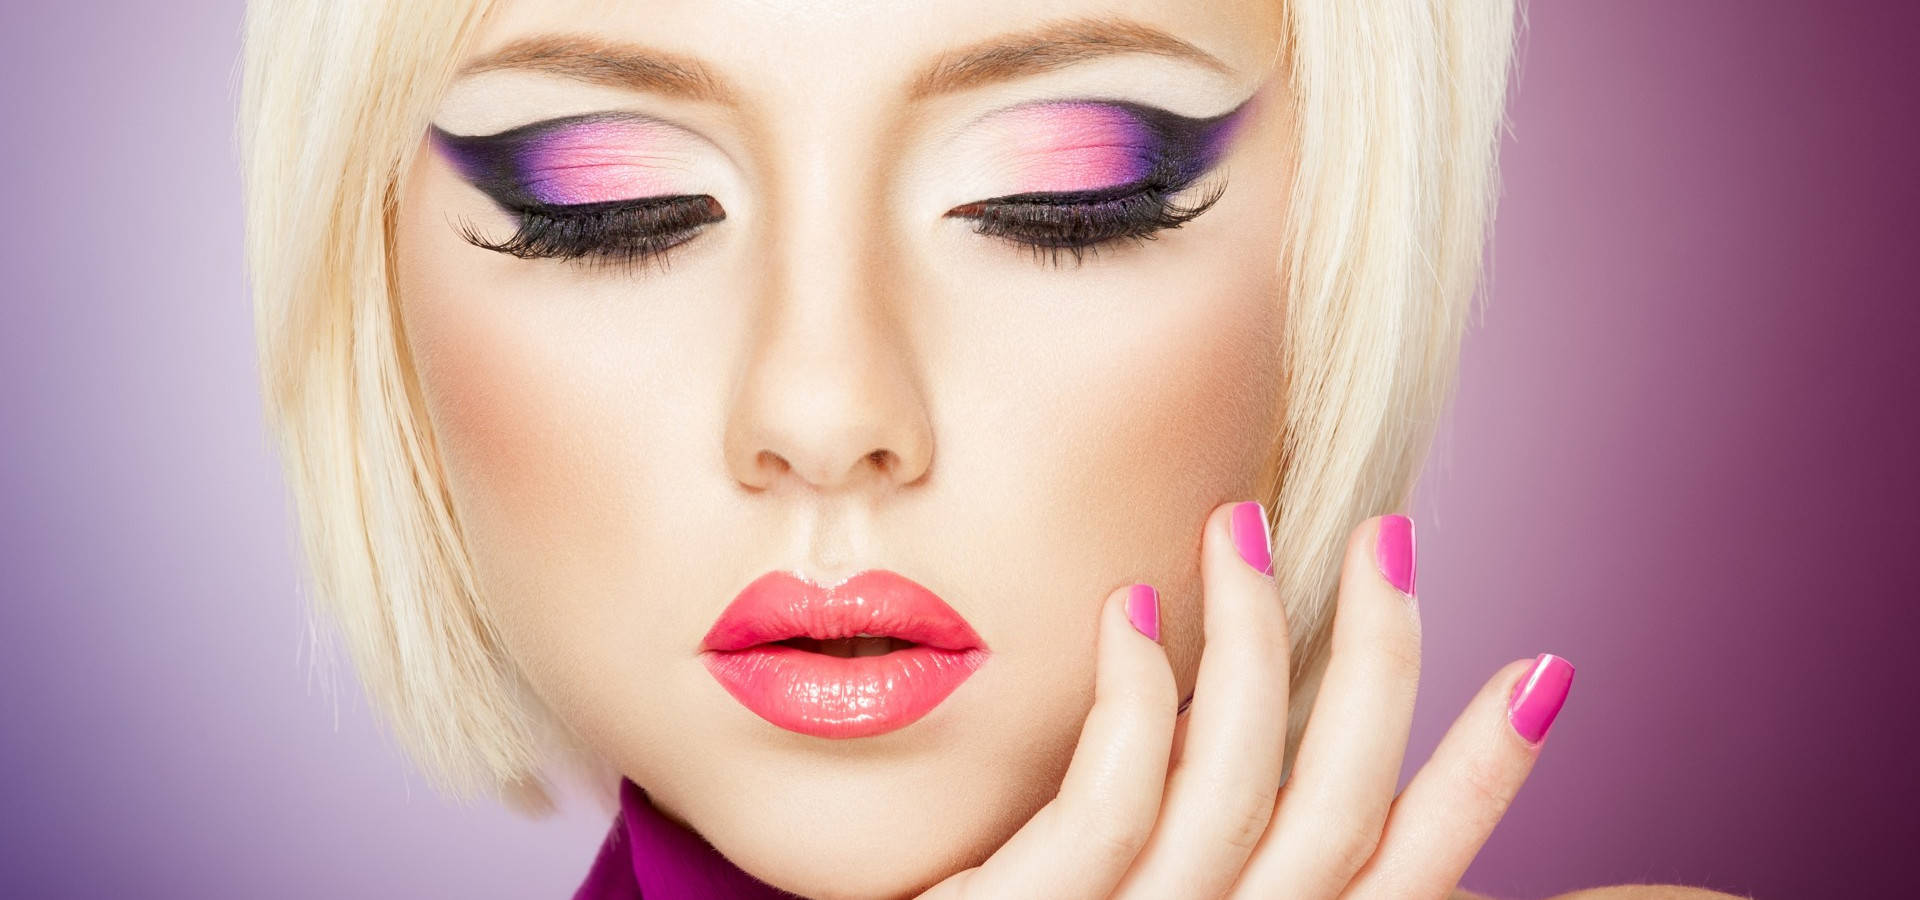 Professional Make-up, machiaj profesional